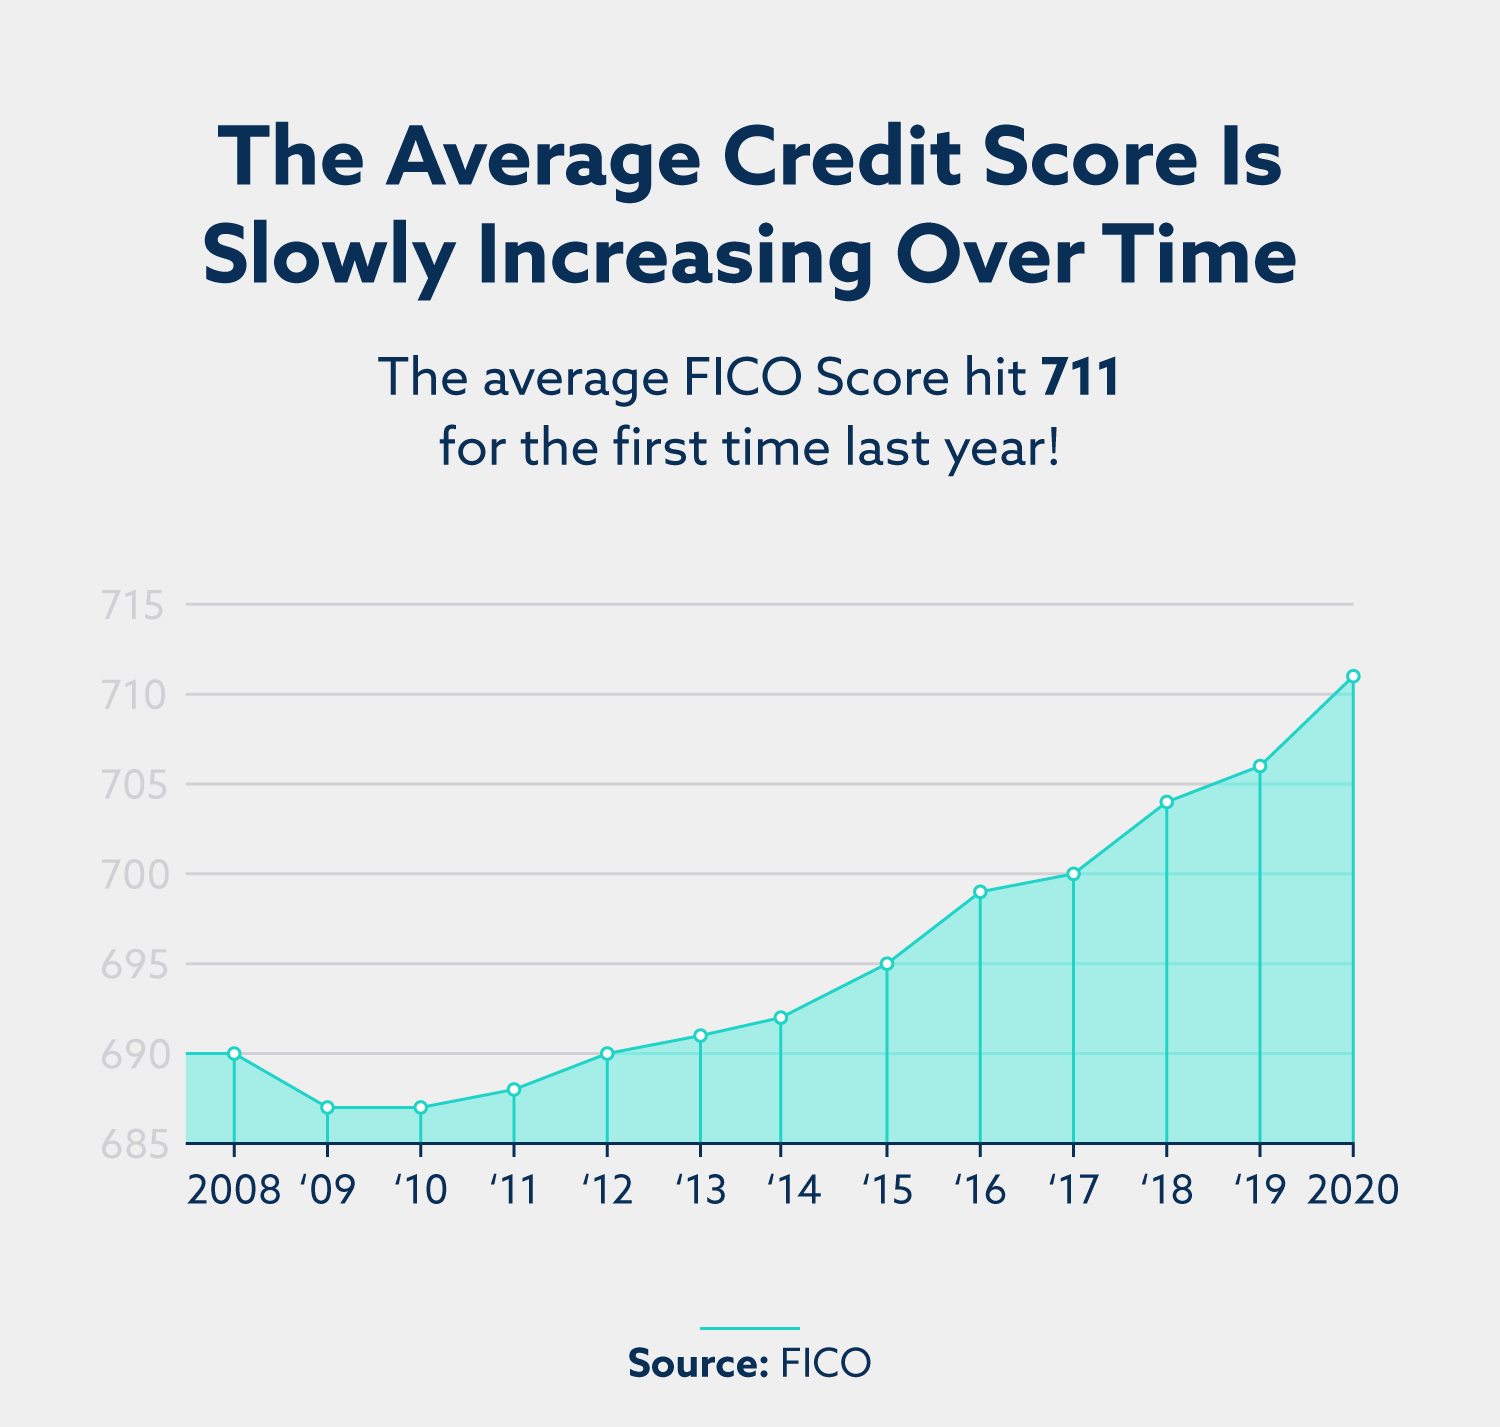 graph of increase in credit score over time